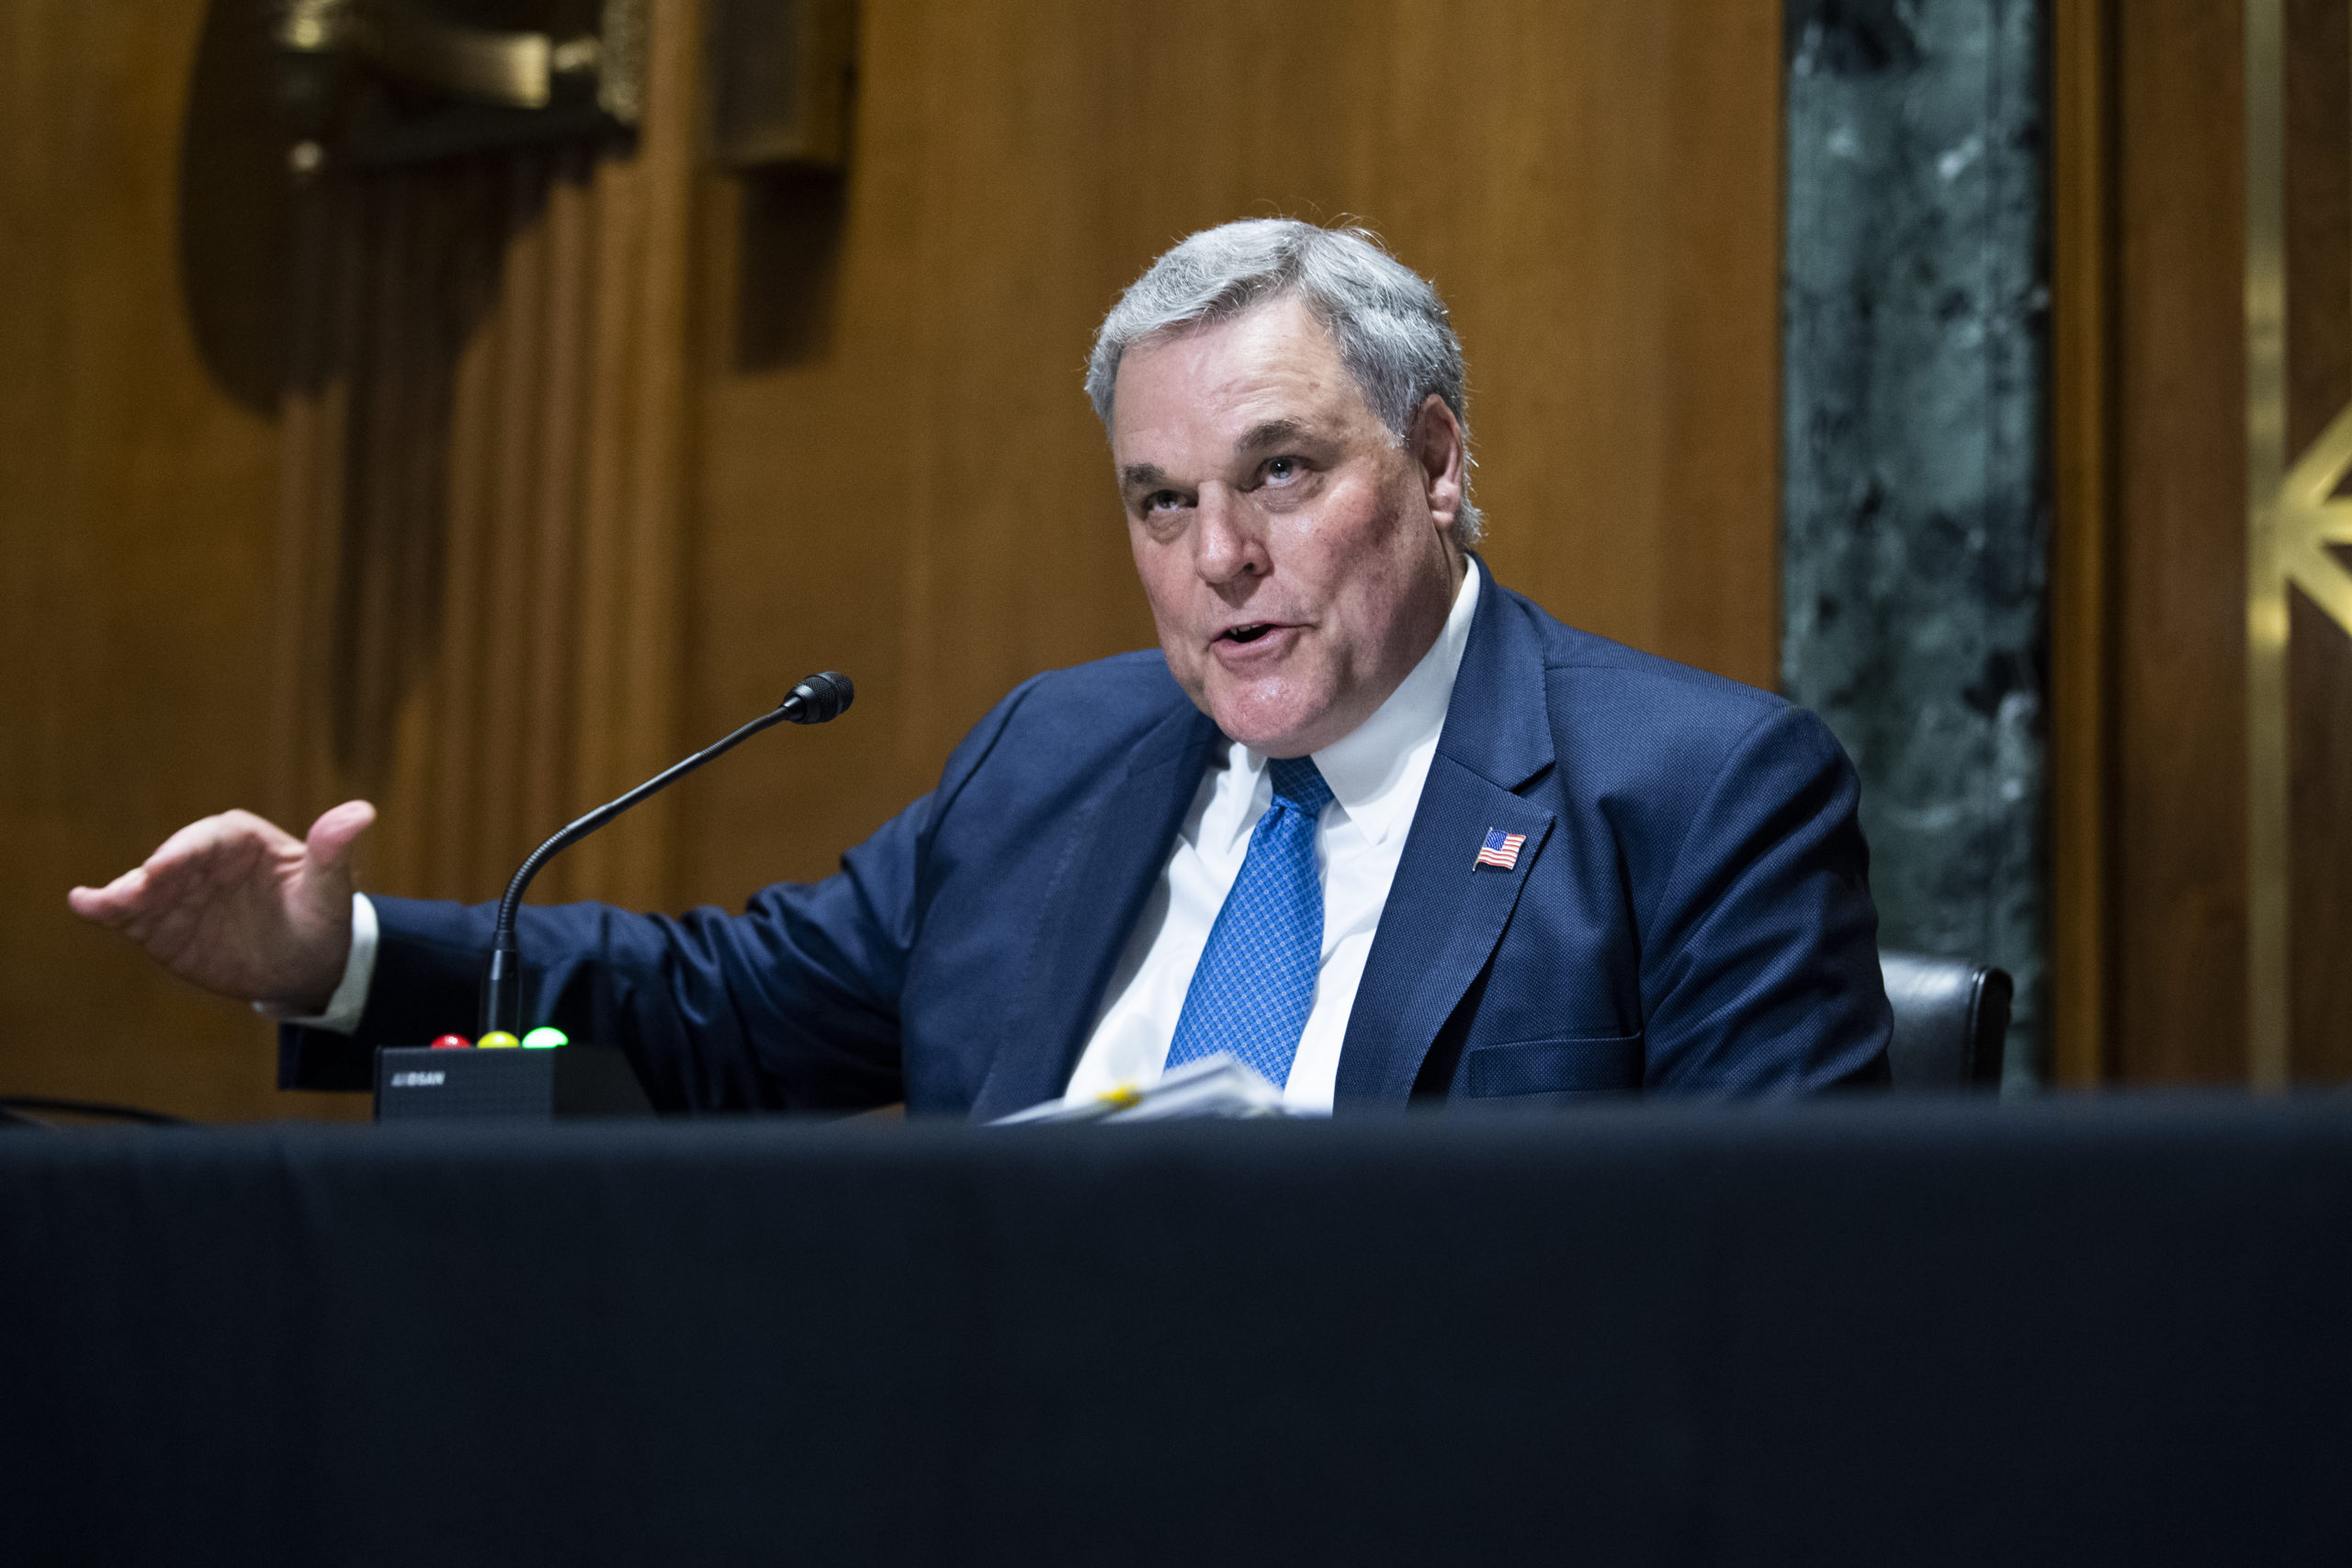 IRS Commissioner Charles Rettig testifies to Senate. (Photo by Tom Williams-Pool/Getty Images)